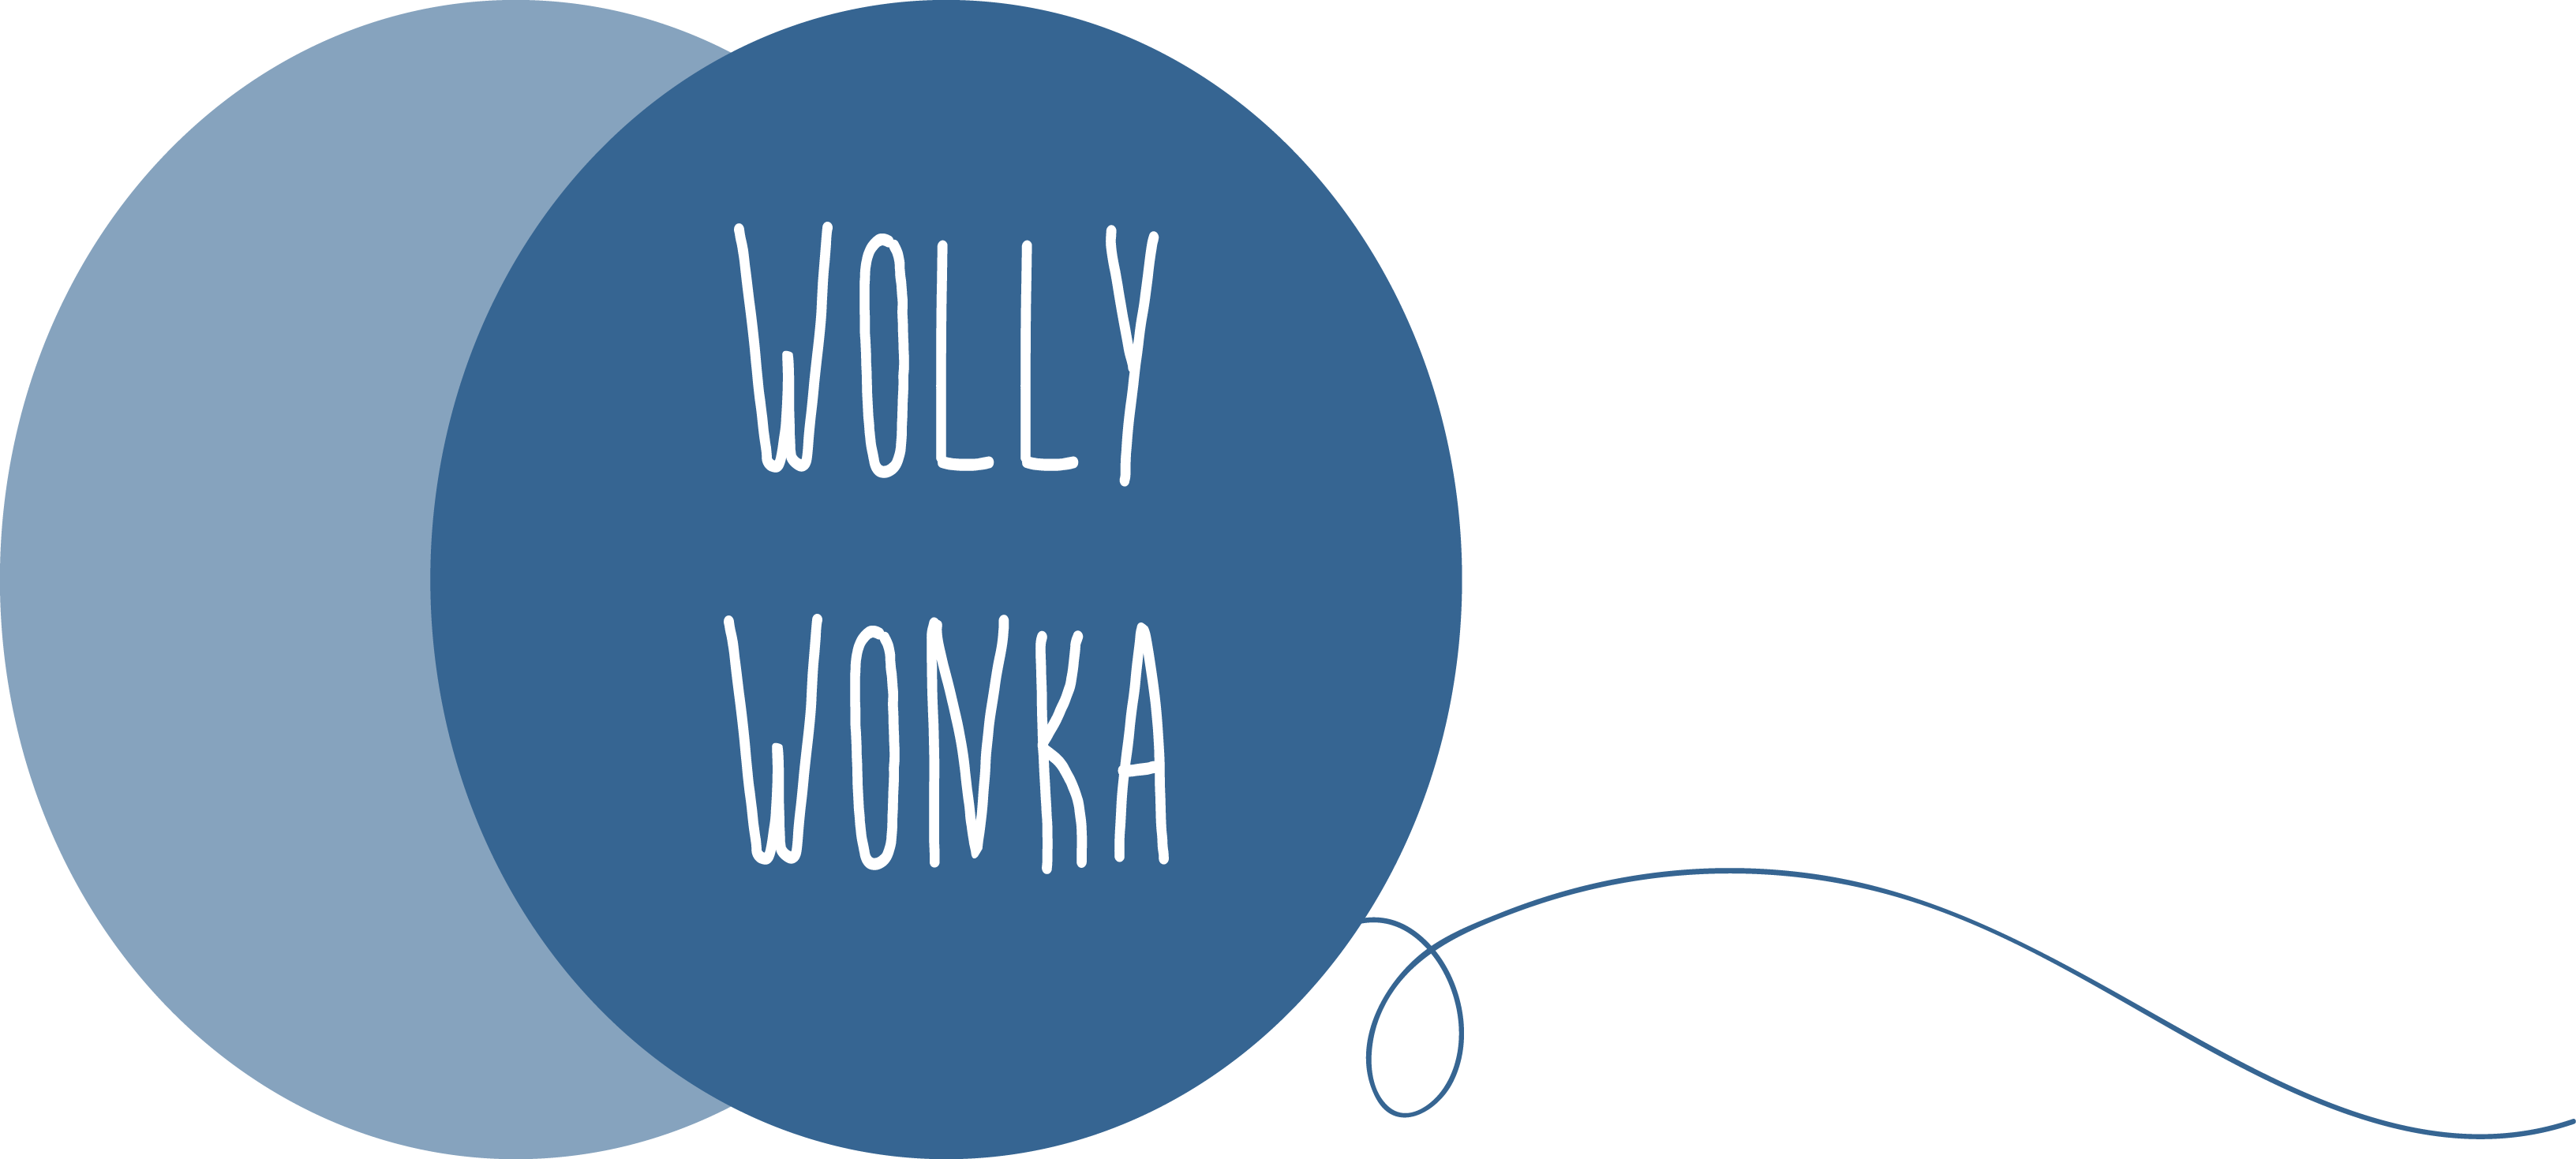 Wolly Wonka